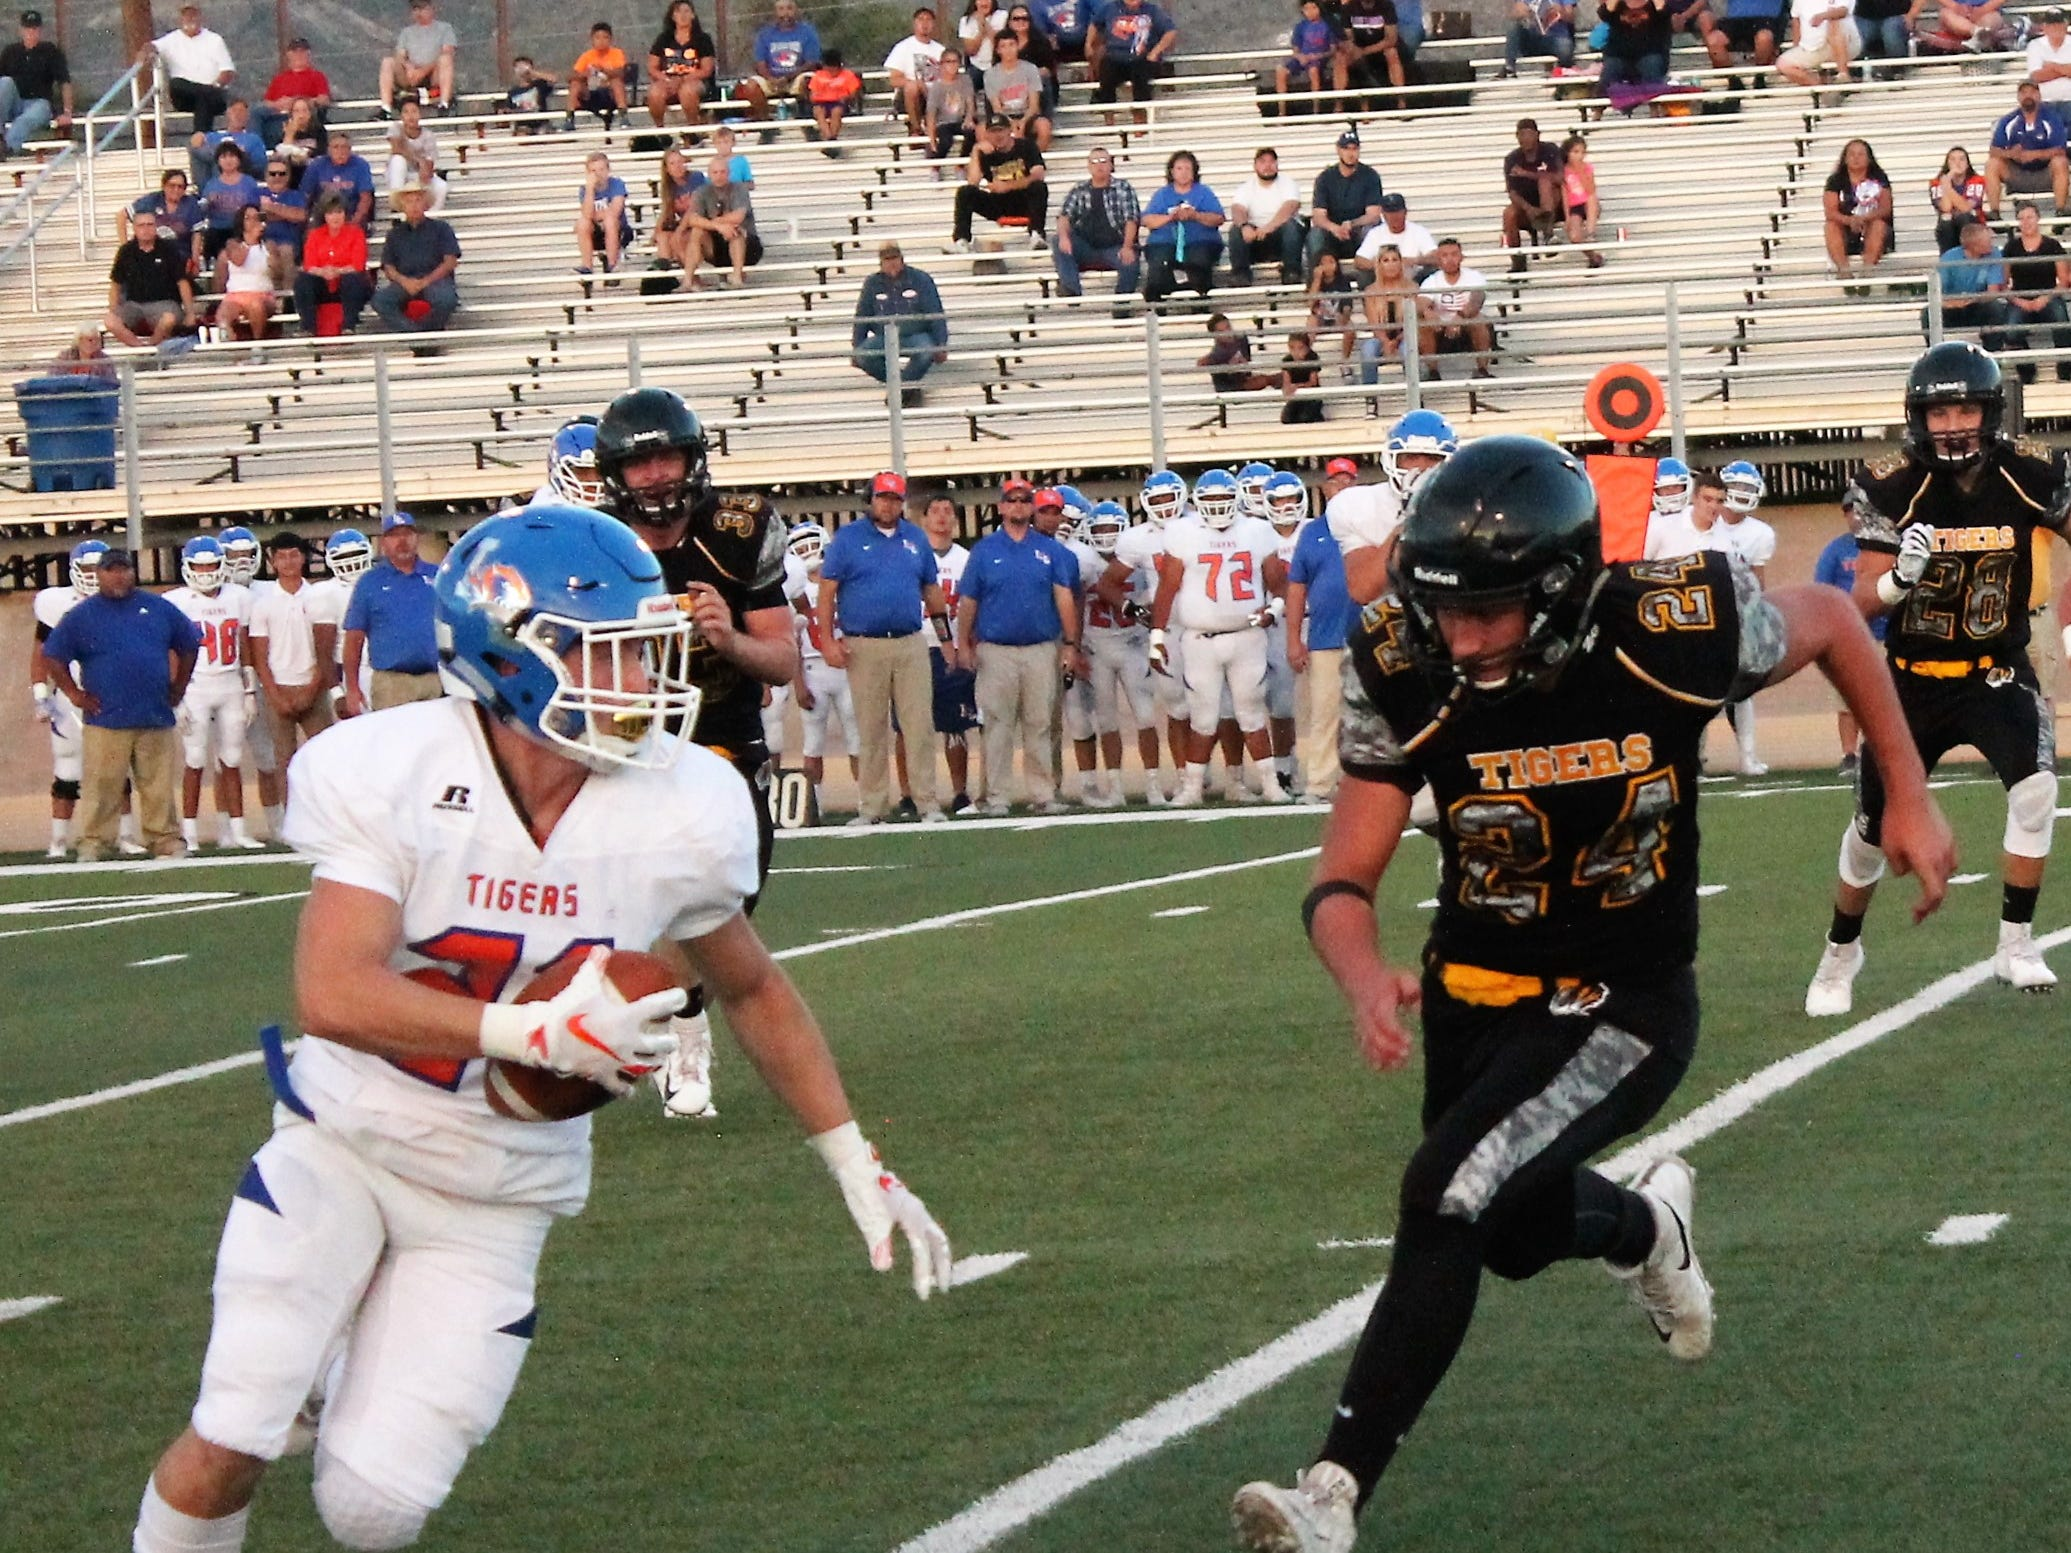 Alamogordo Tigers running back Mark Prather attempts an interception at Friday night's game against Los Lunas.